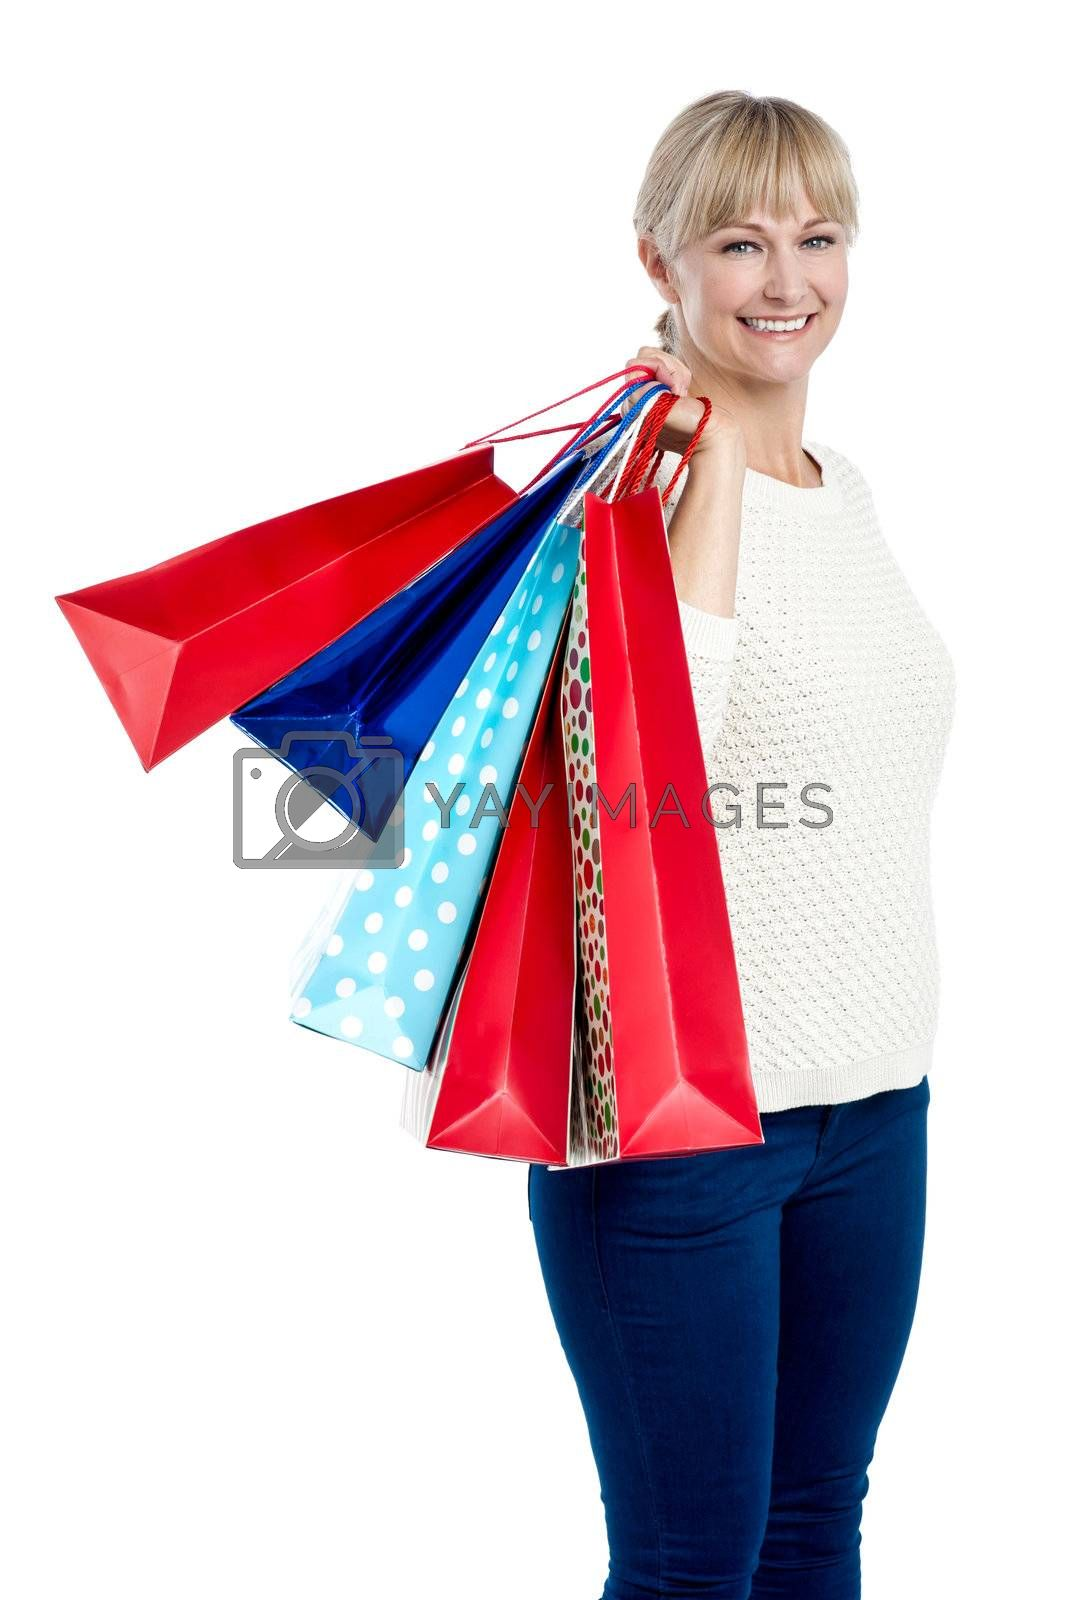 Stylish woman with colorful shopping bags slung over her shoulder.